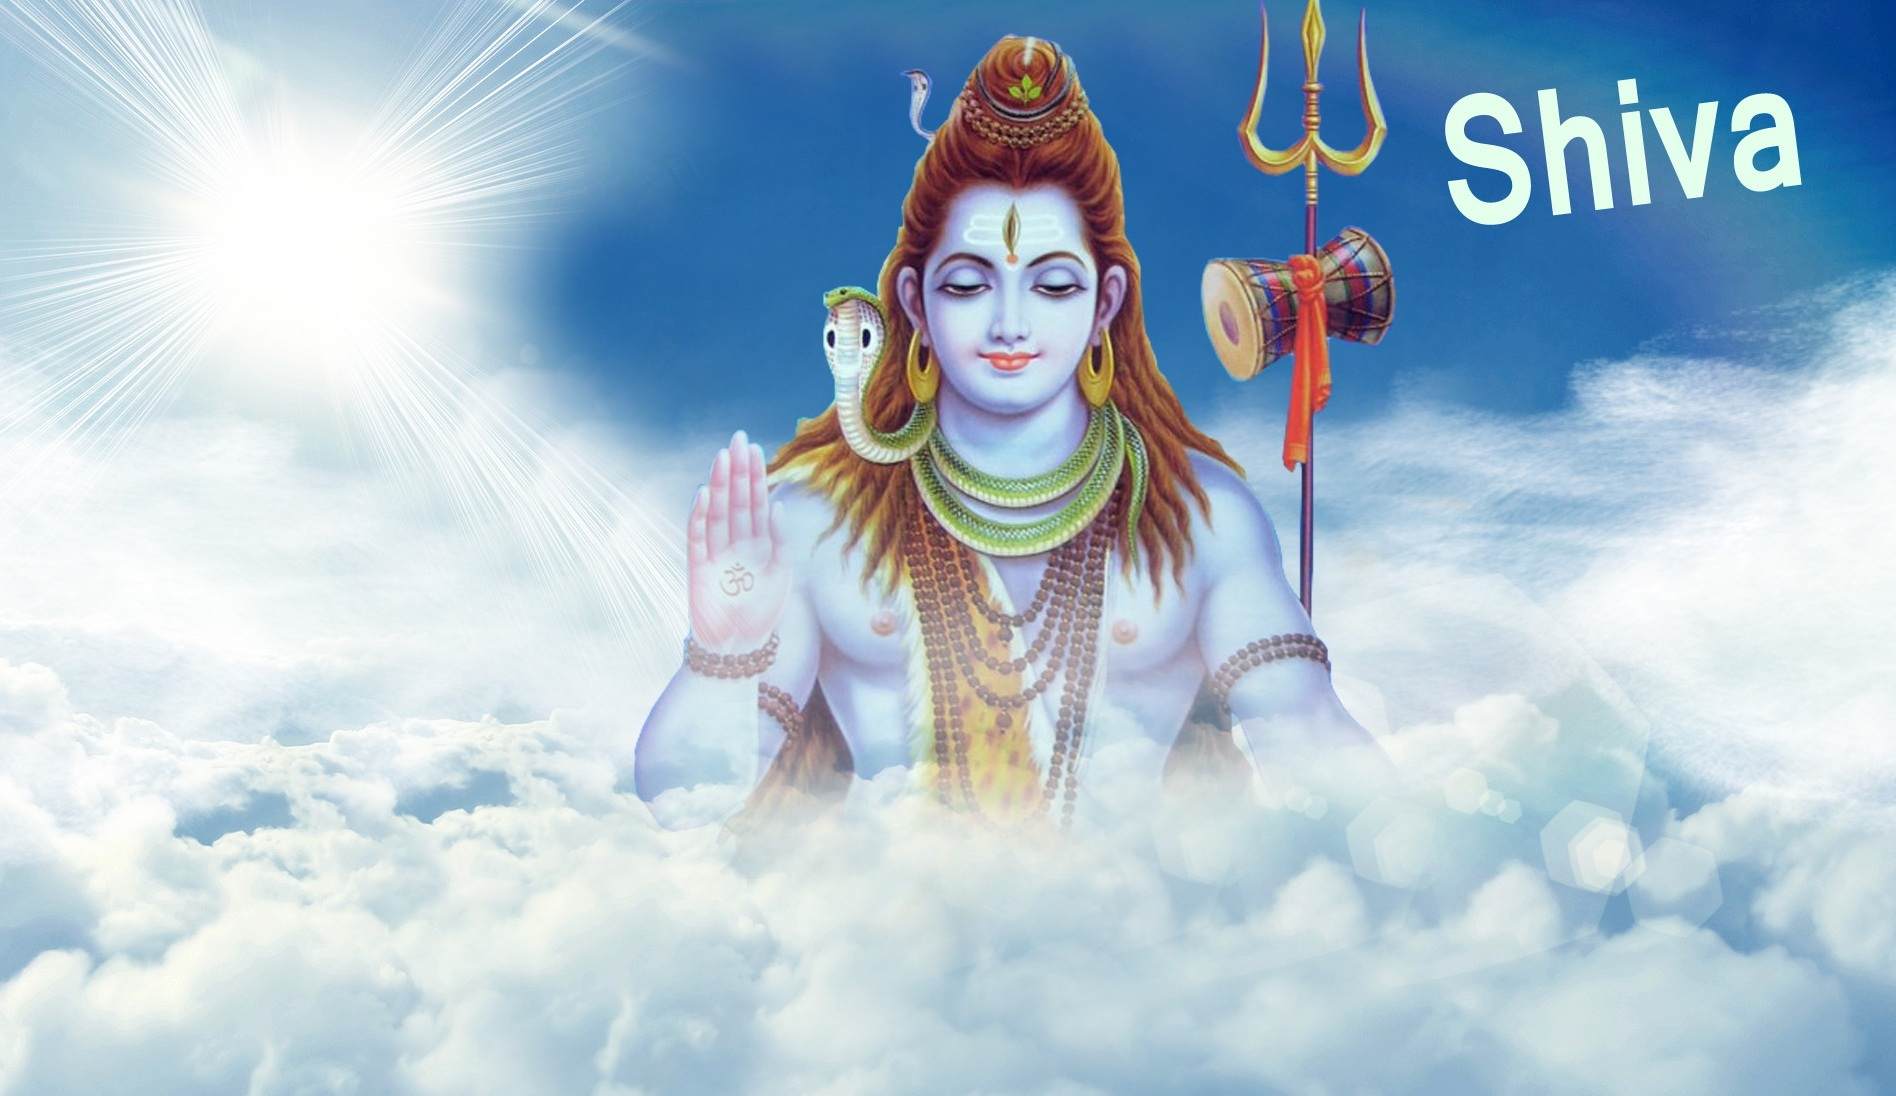 lord-shiva-hd-wallpaper-free-download-for-desktop